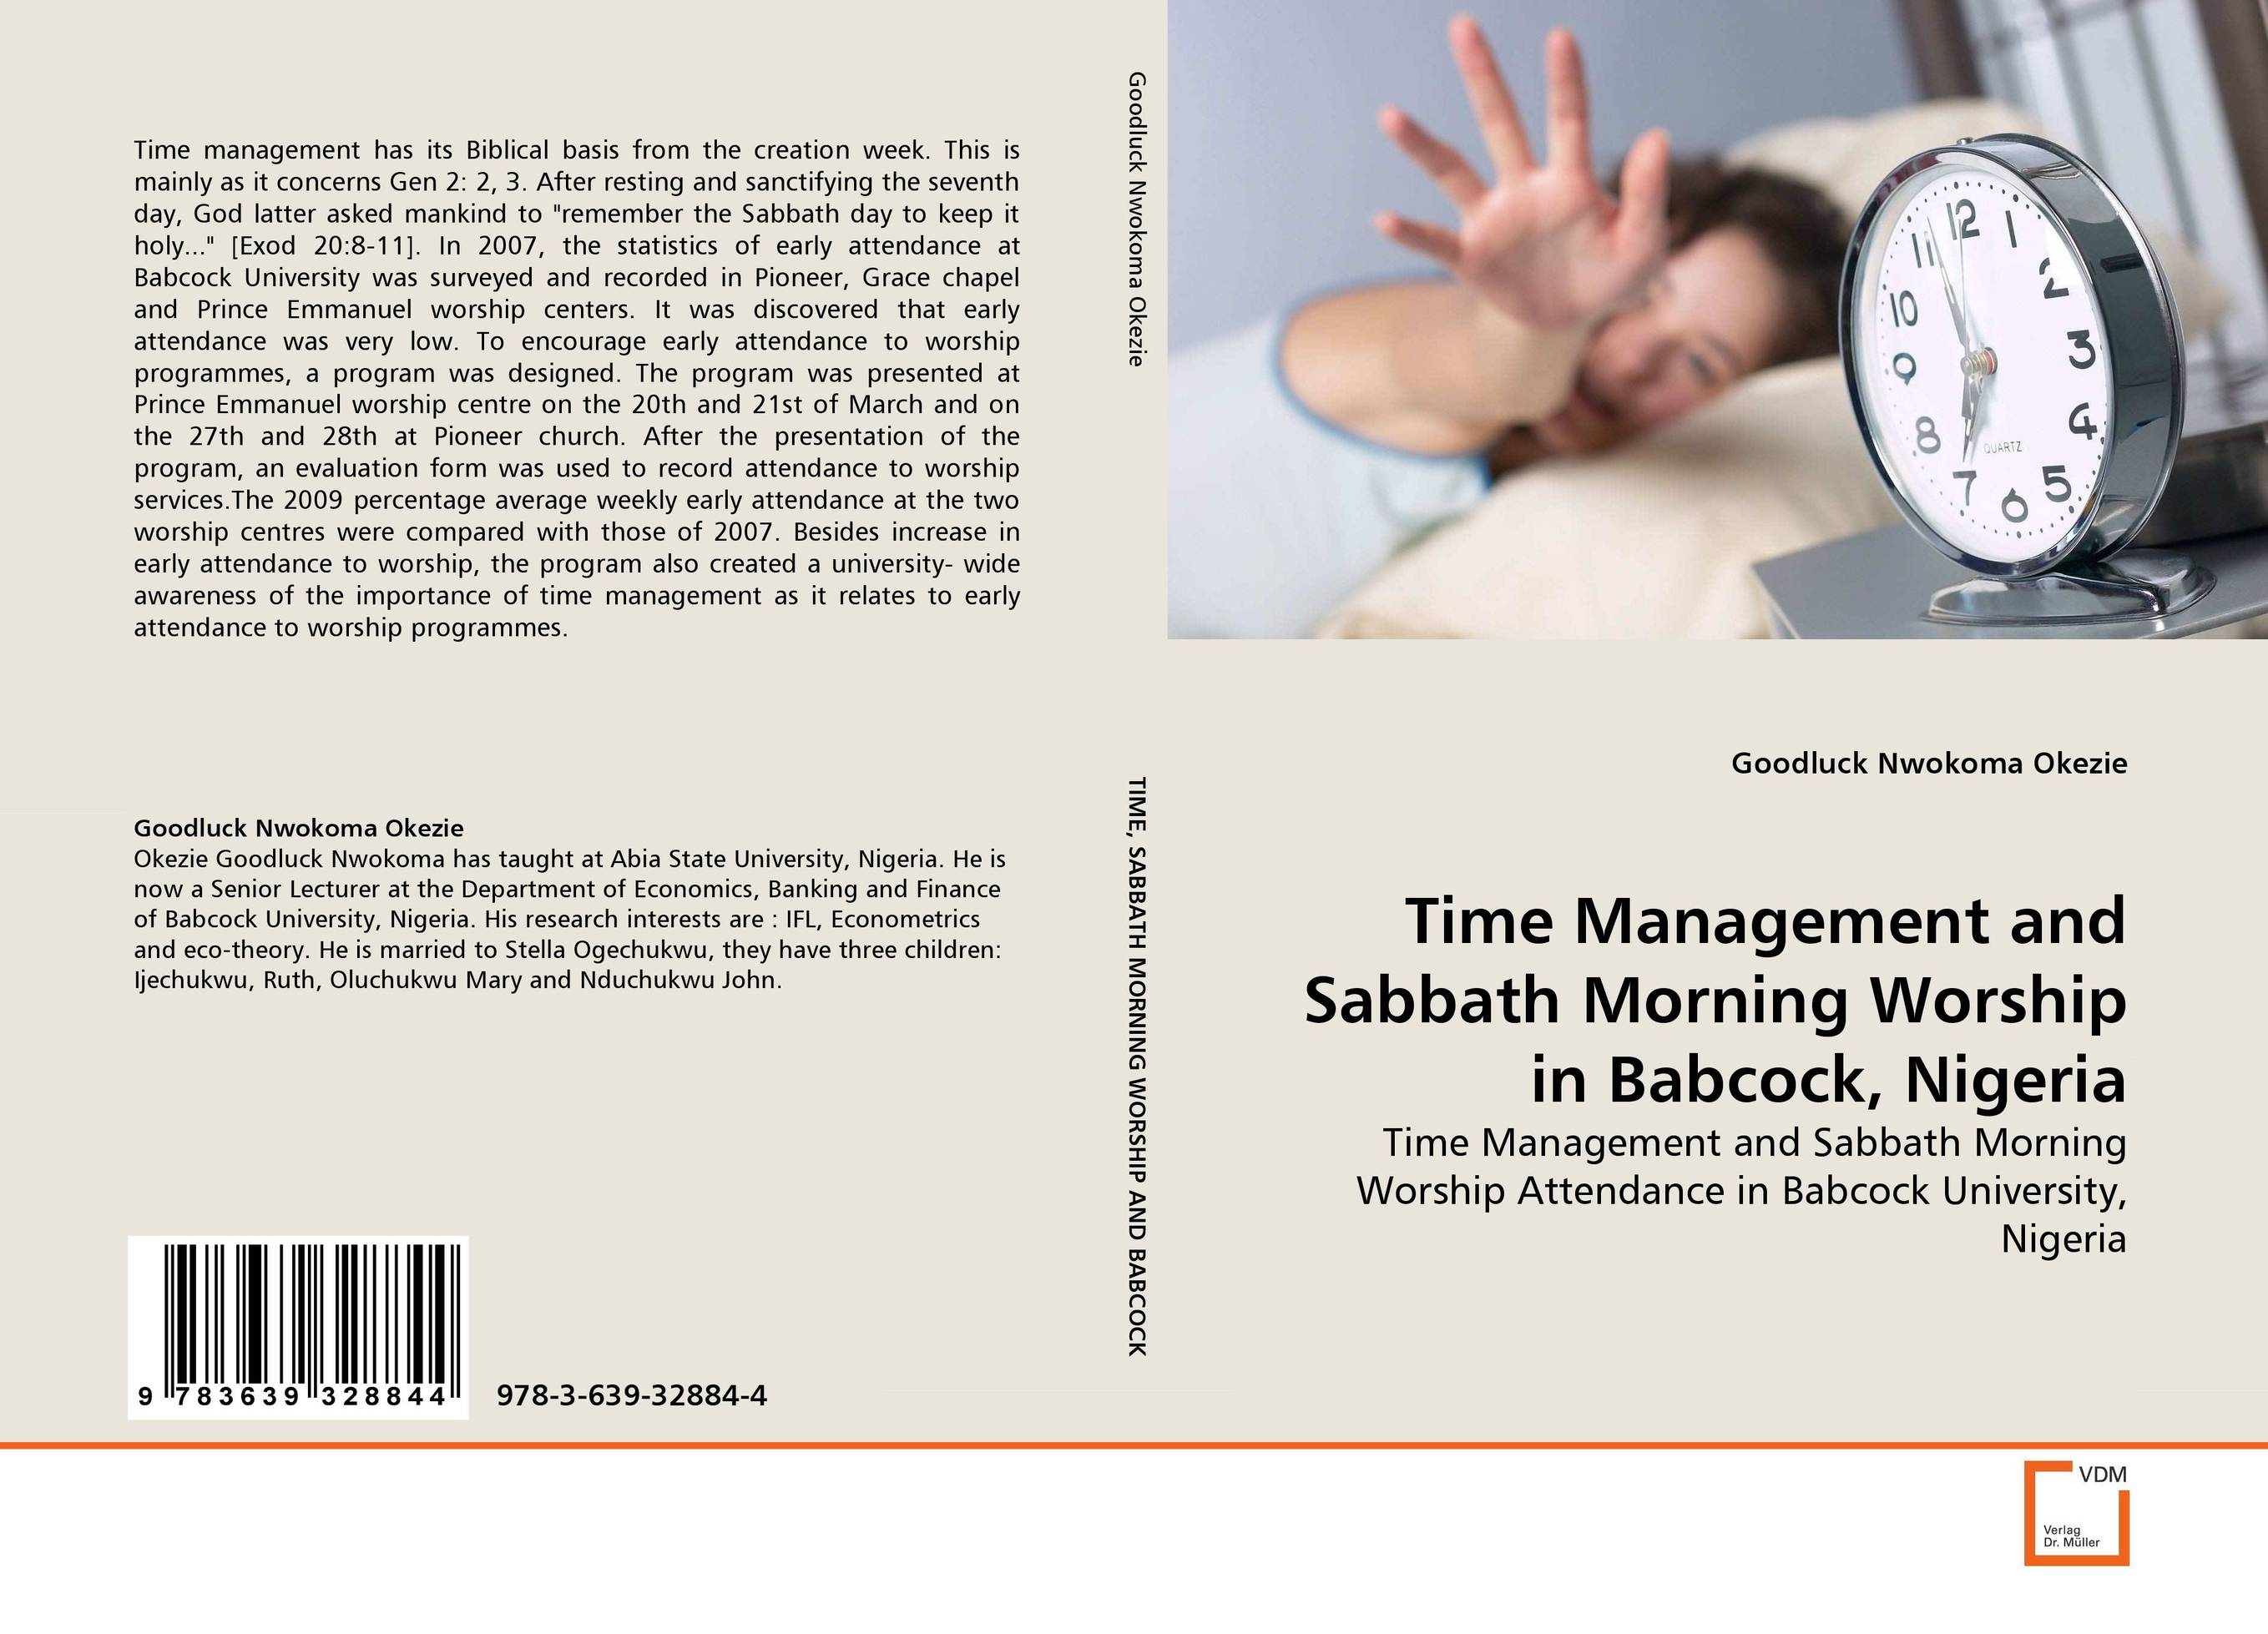 Time Management and Sabbath Morning Worship in Babcock, Nigeria